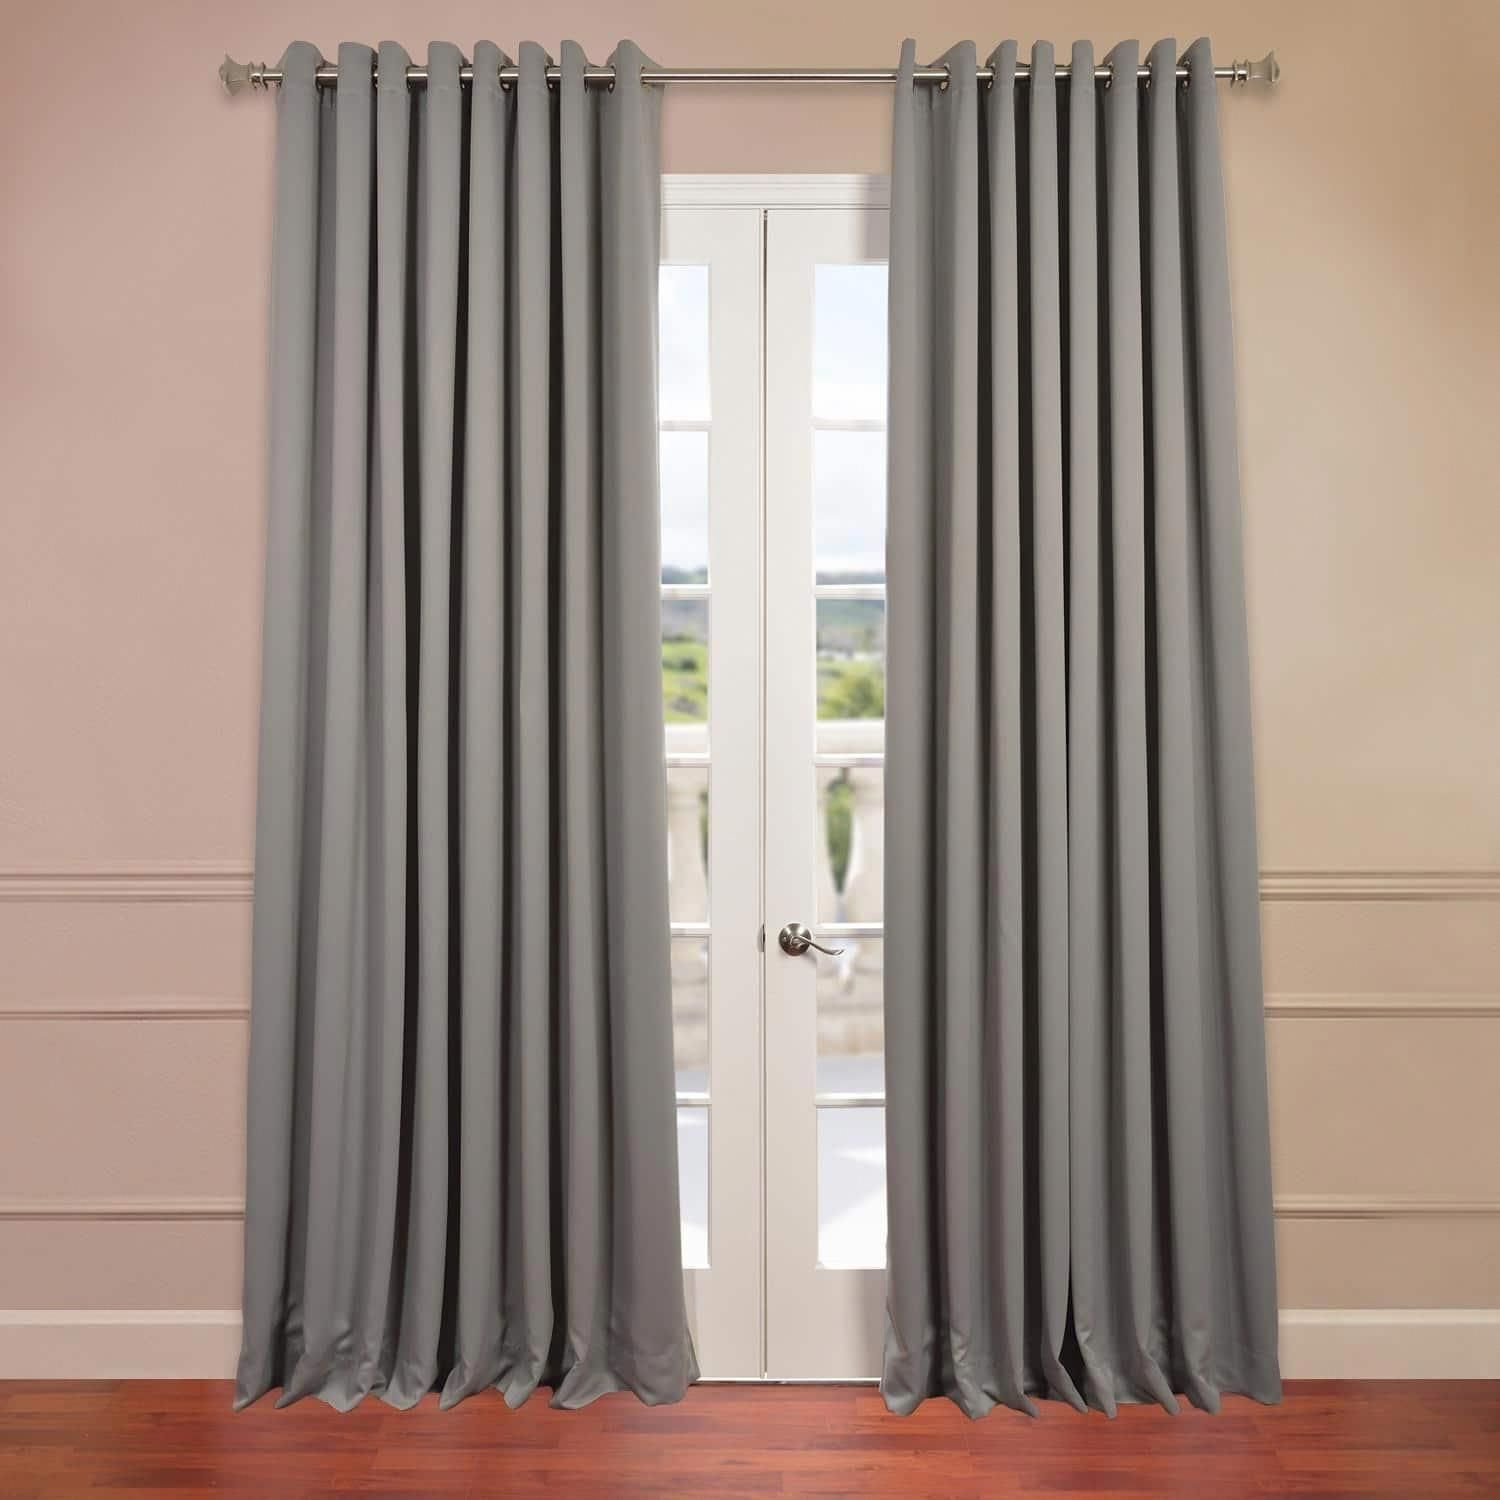 Exclusive Fabrics Extra Wide Thermal Blackout Grommet 96 Inch Curtain Panel 100 X 96 Neutral Grey Home Half Price Drapes Panel Curtains 108 Inch Curtains